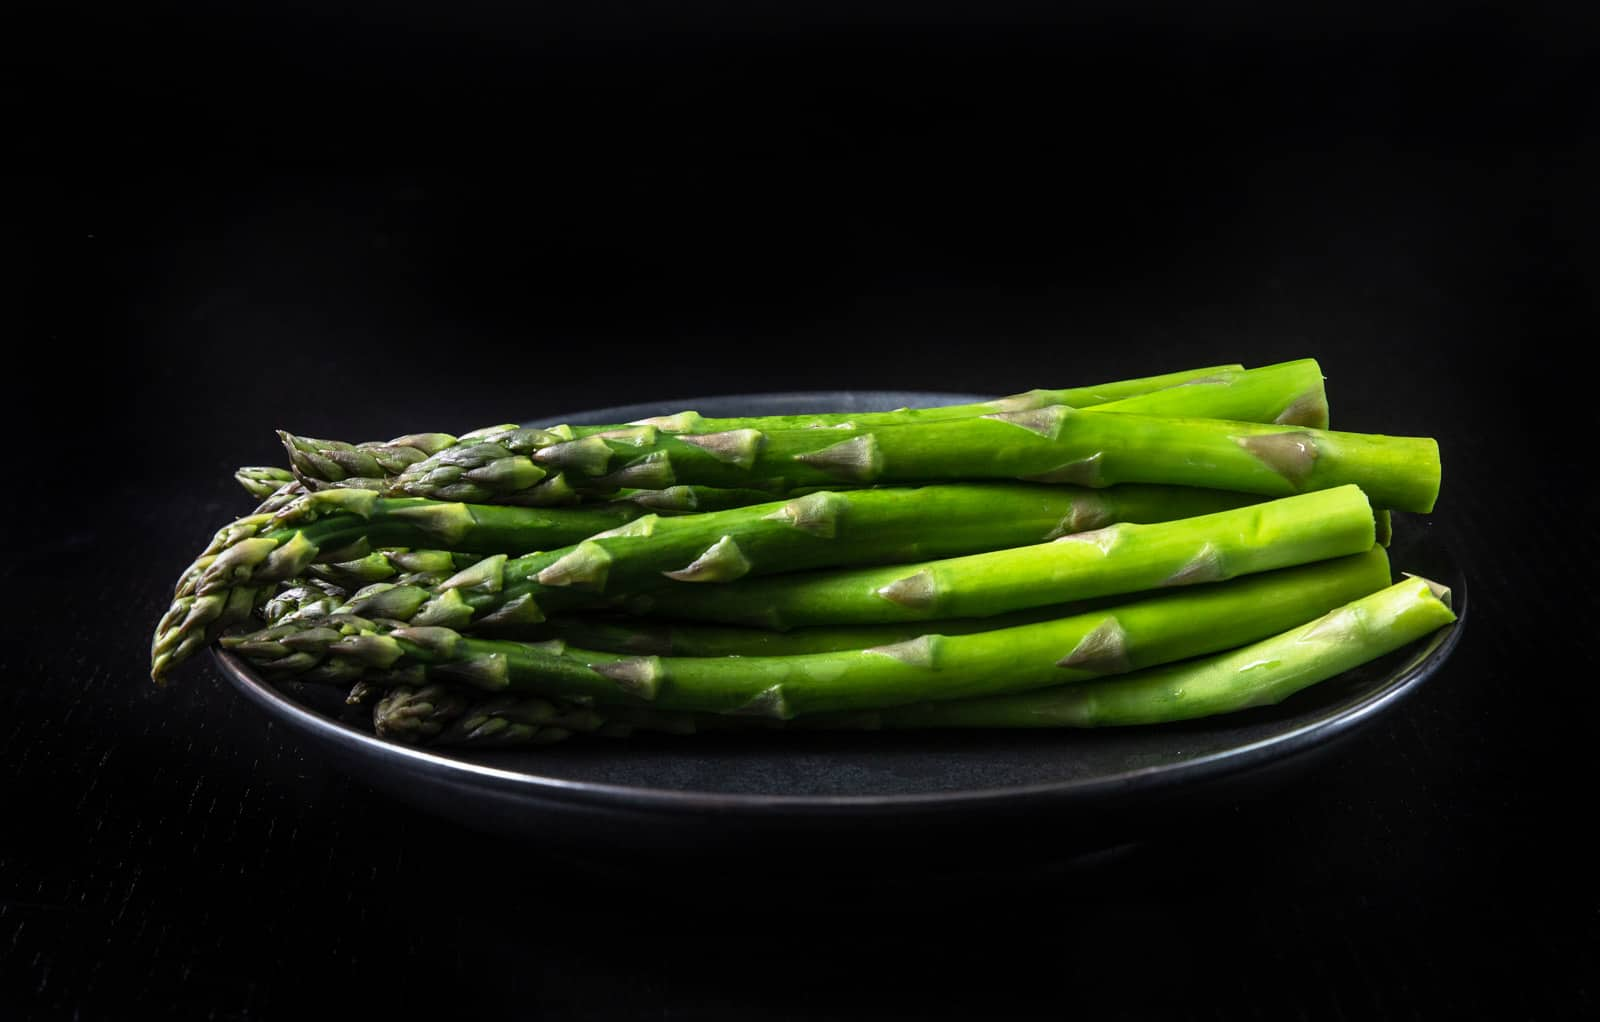 Asparagus, Genmedicare, Healthcare